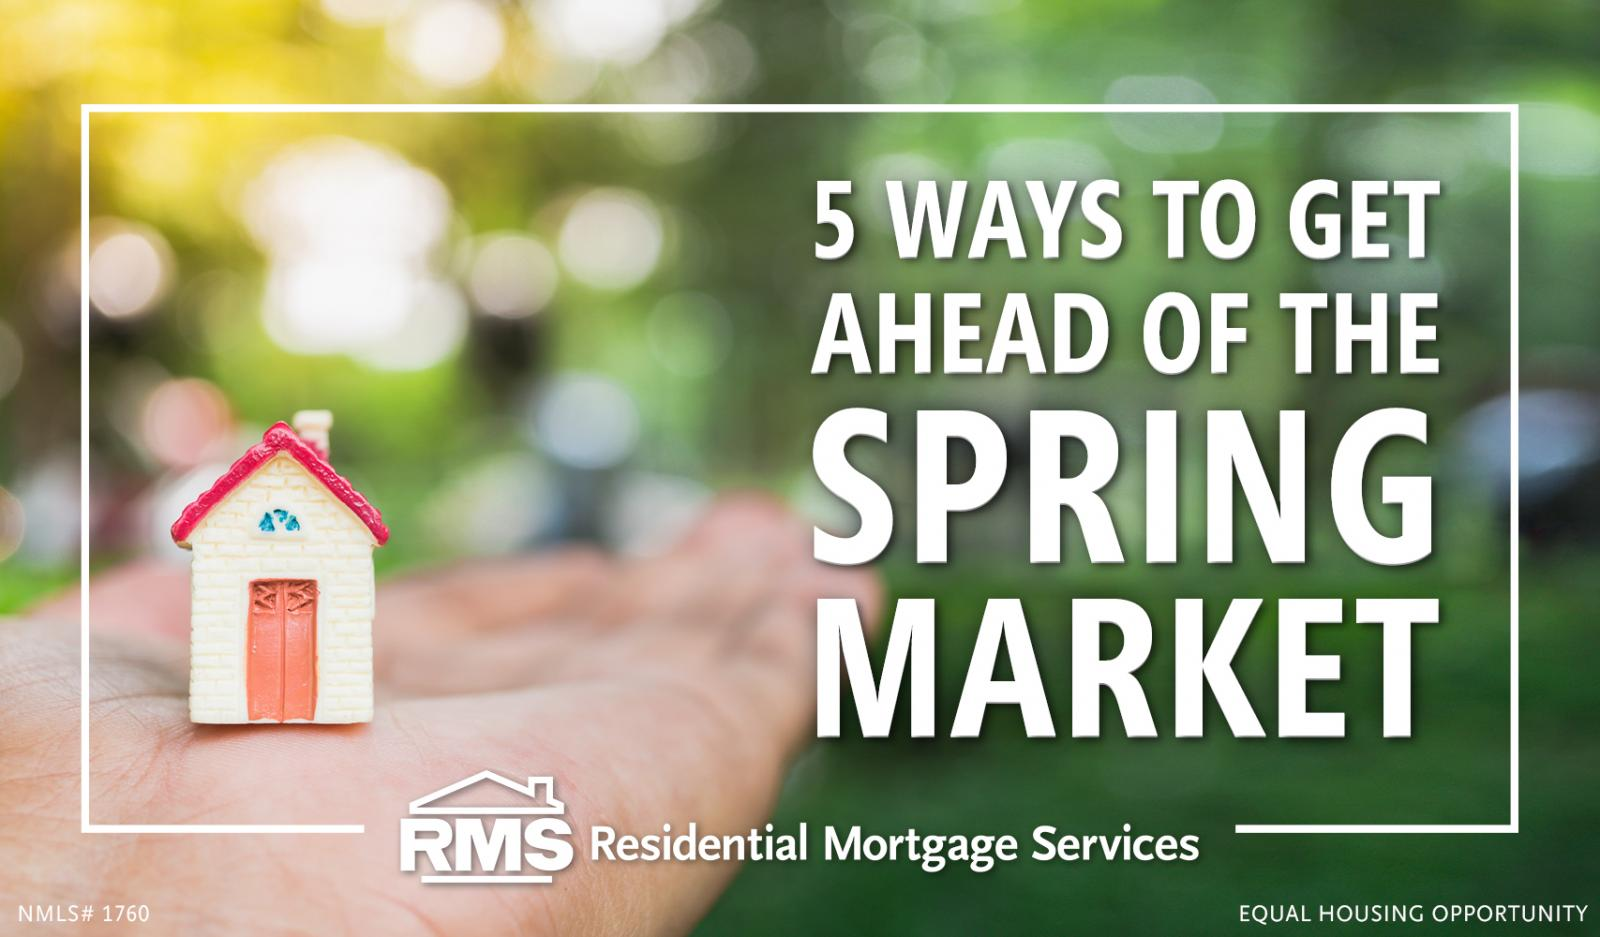 Ways to get ahead of the spring housing market